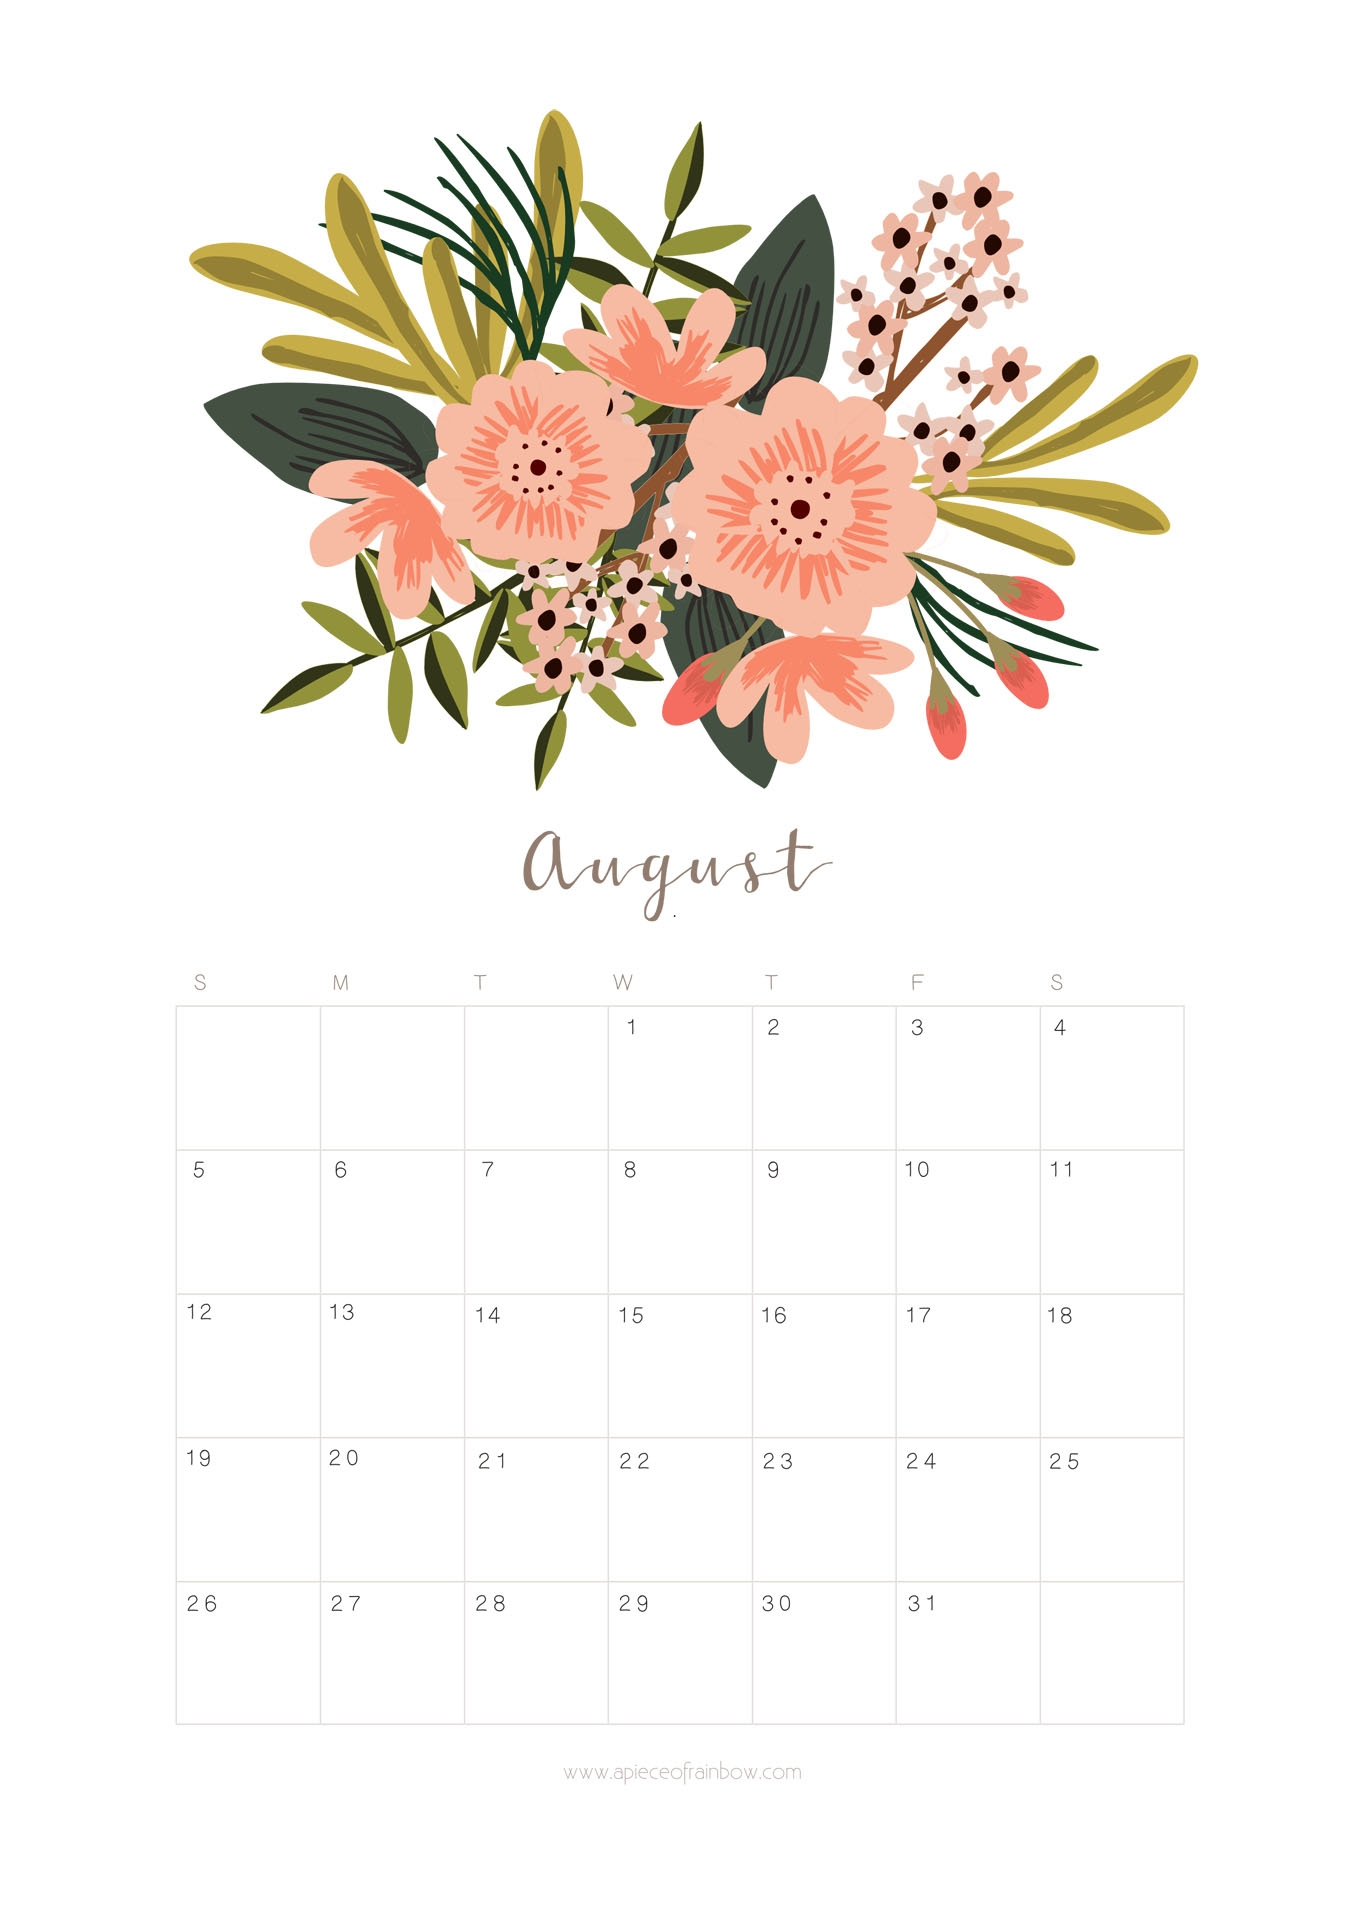 printable august 2018 calendar monthly planner flower design a Calendar August 2018 Printable Schedule erdferdf